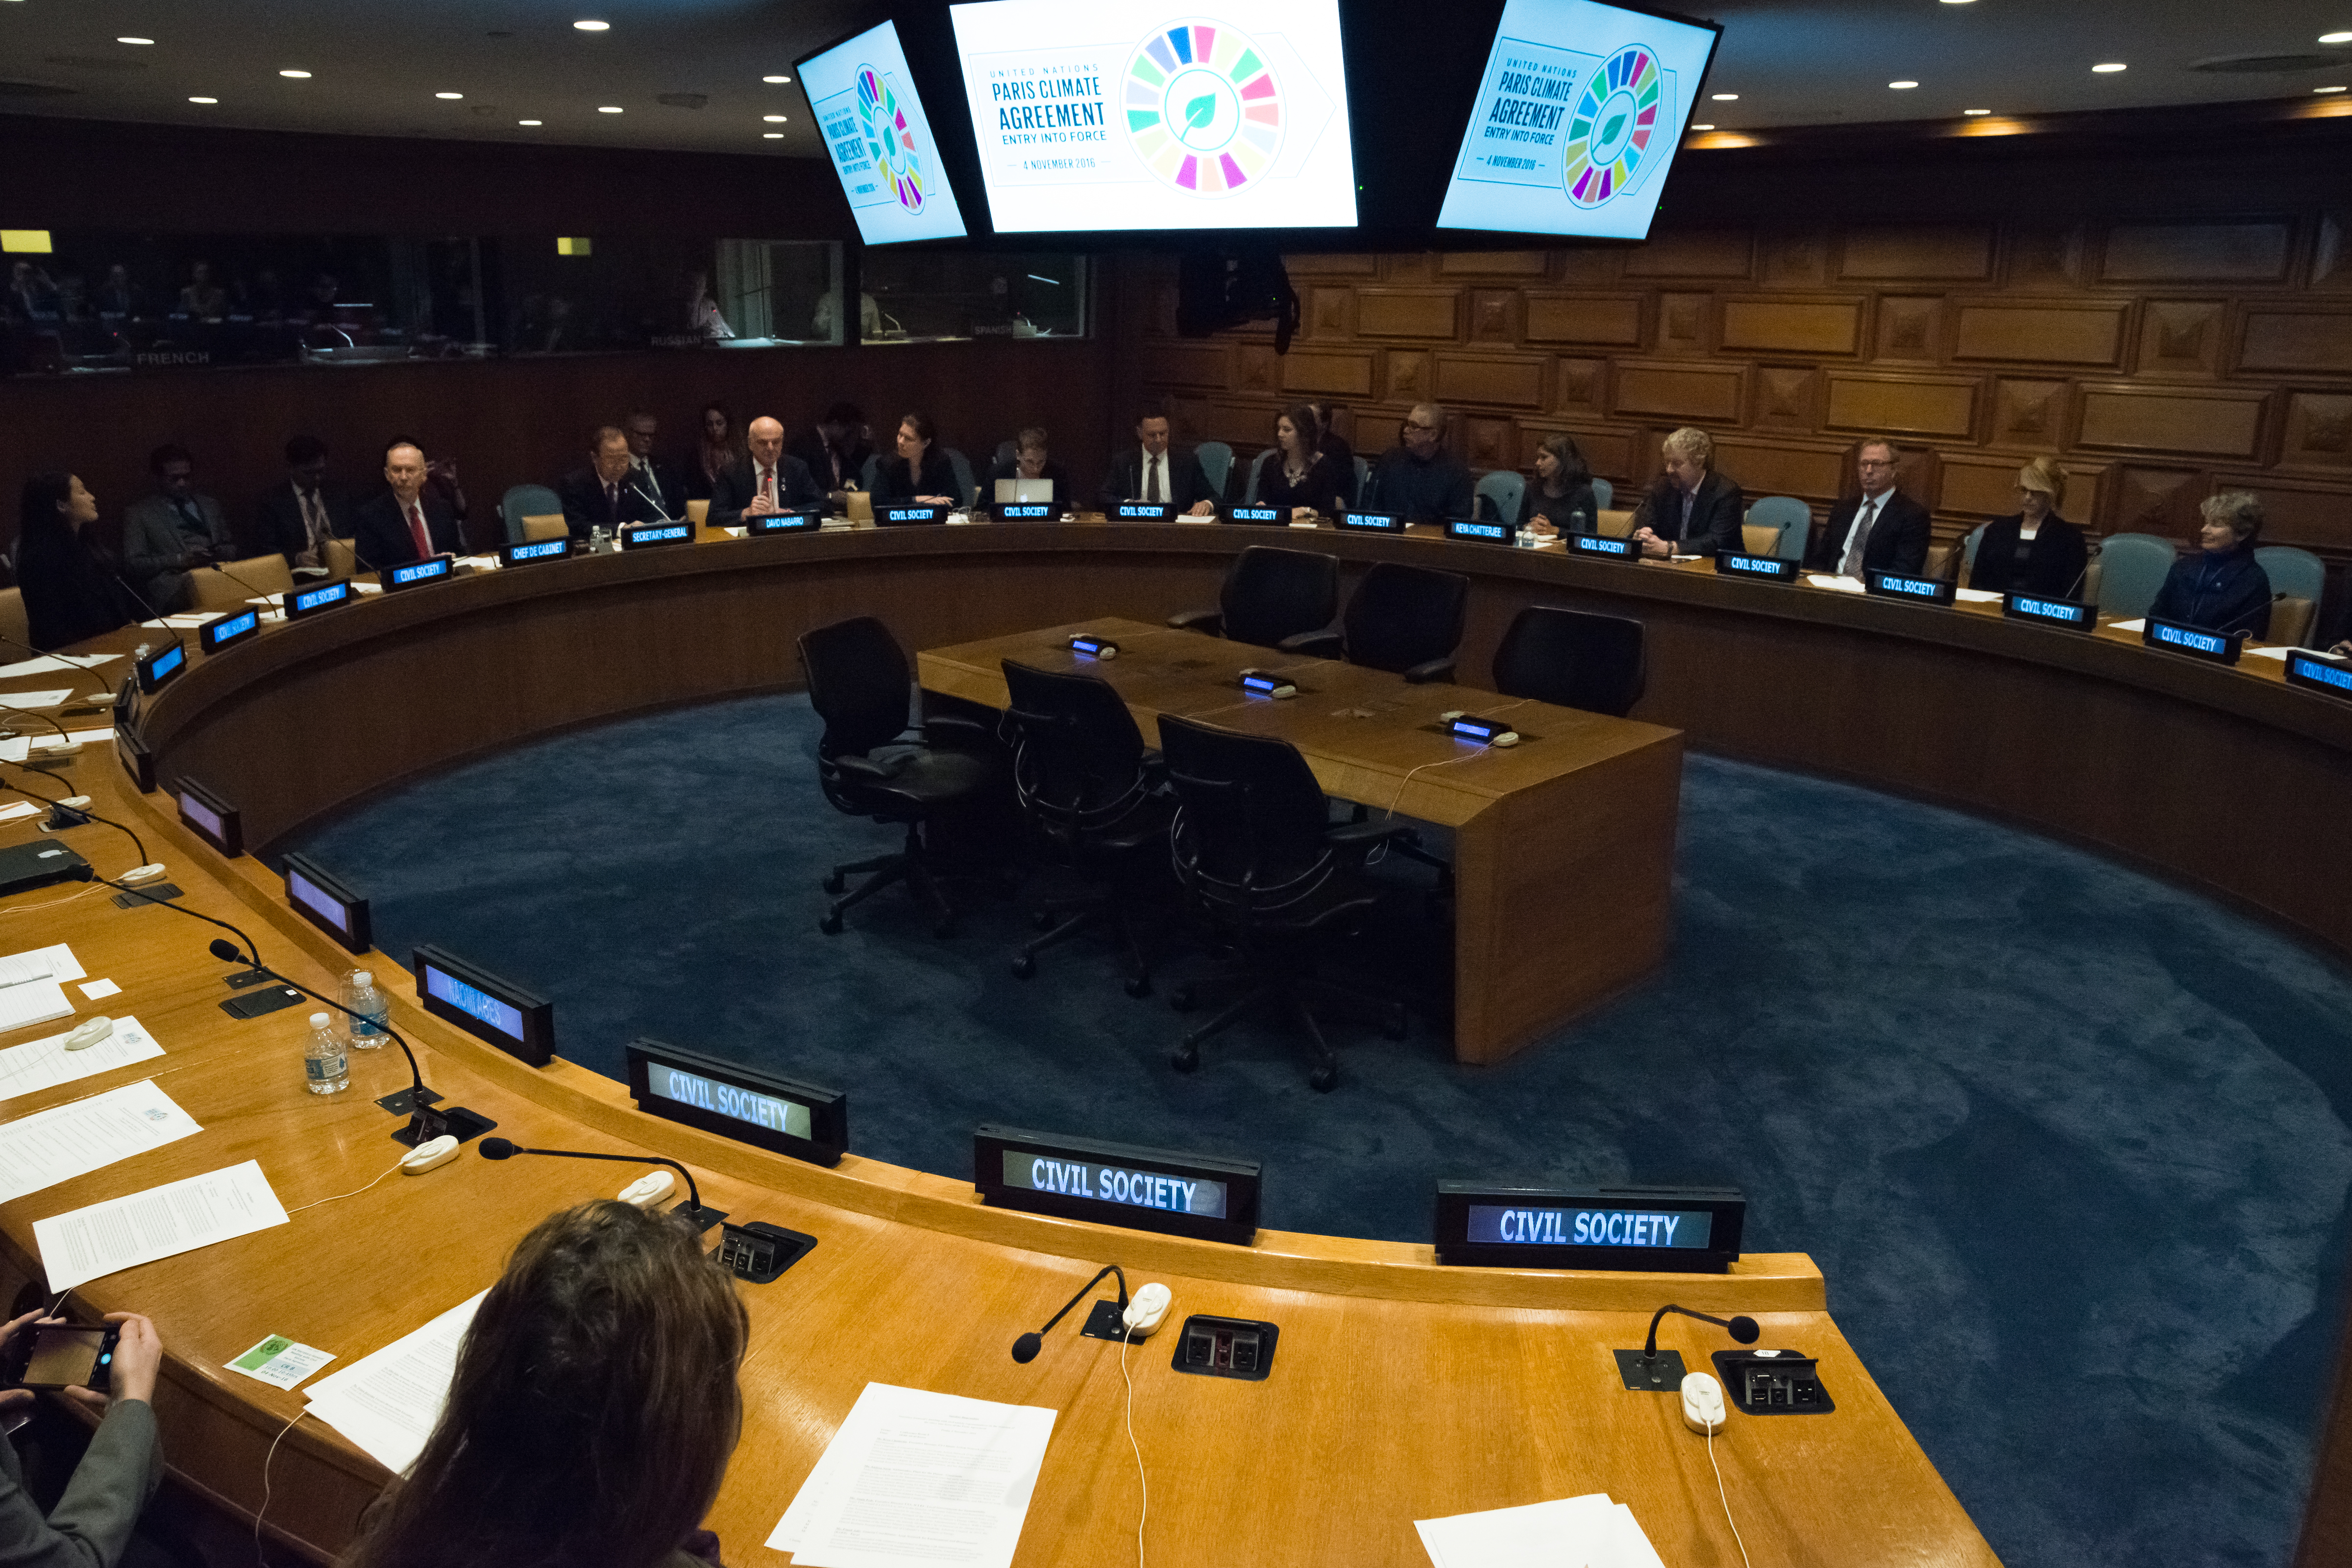 To mark the occasion of the Paris Climate Agreement's entry into force (November 4), United Nations Secretary-General Ban Ki-moon attended a meeting of civic society leaders in Conference Room 8 at UN Headquarters in New York City.